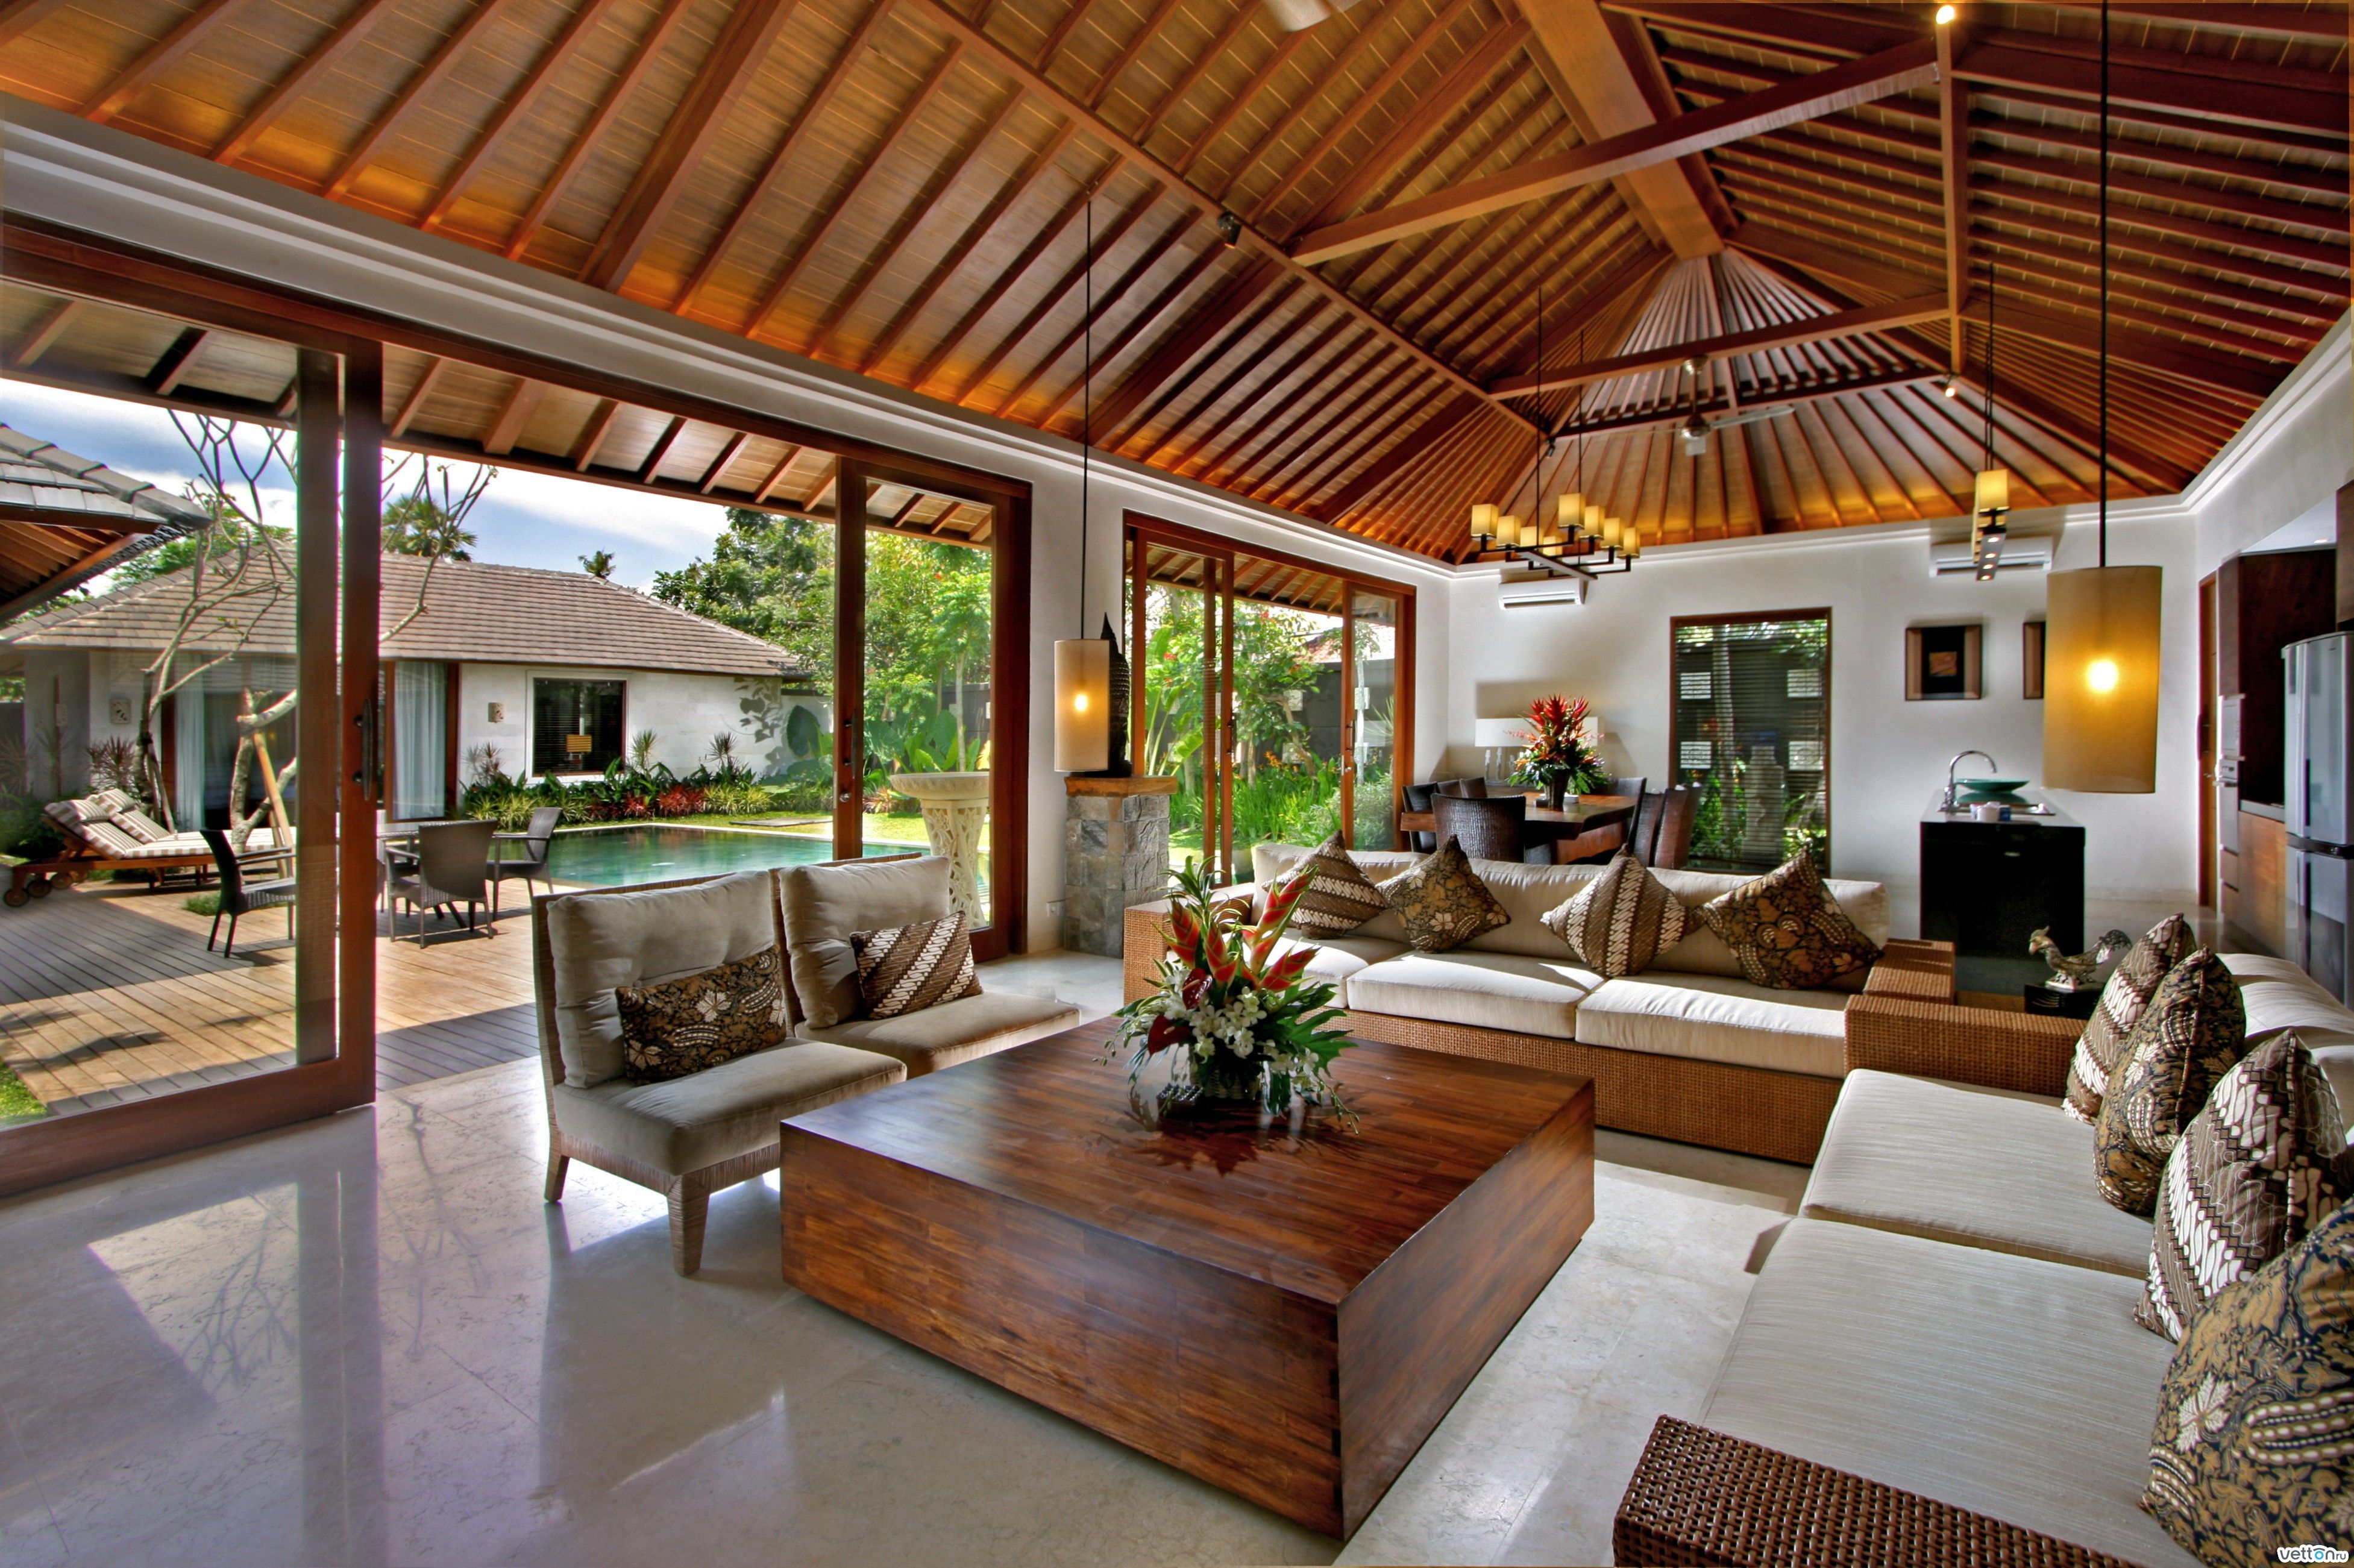 house and interiors. Modern filipino nipa hut House Interior  MA OSA Interiors modern take on the relaxed Filipino home Awesome houses Pinterest Hut house and